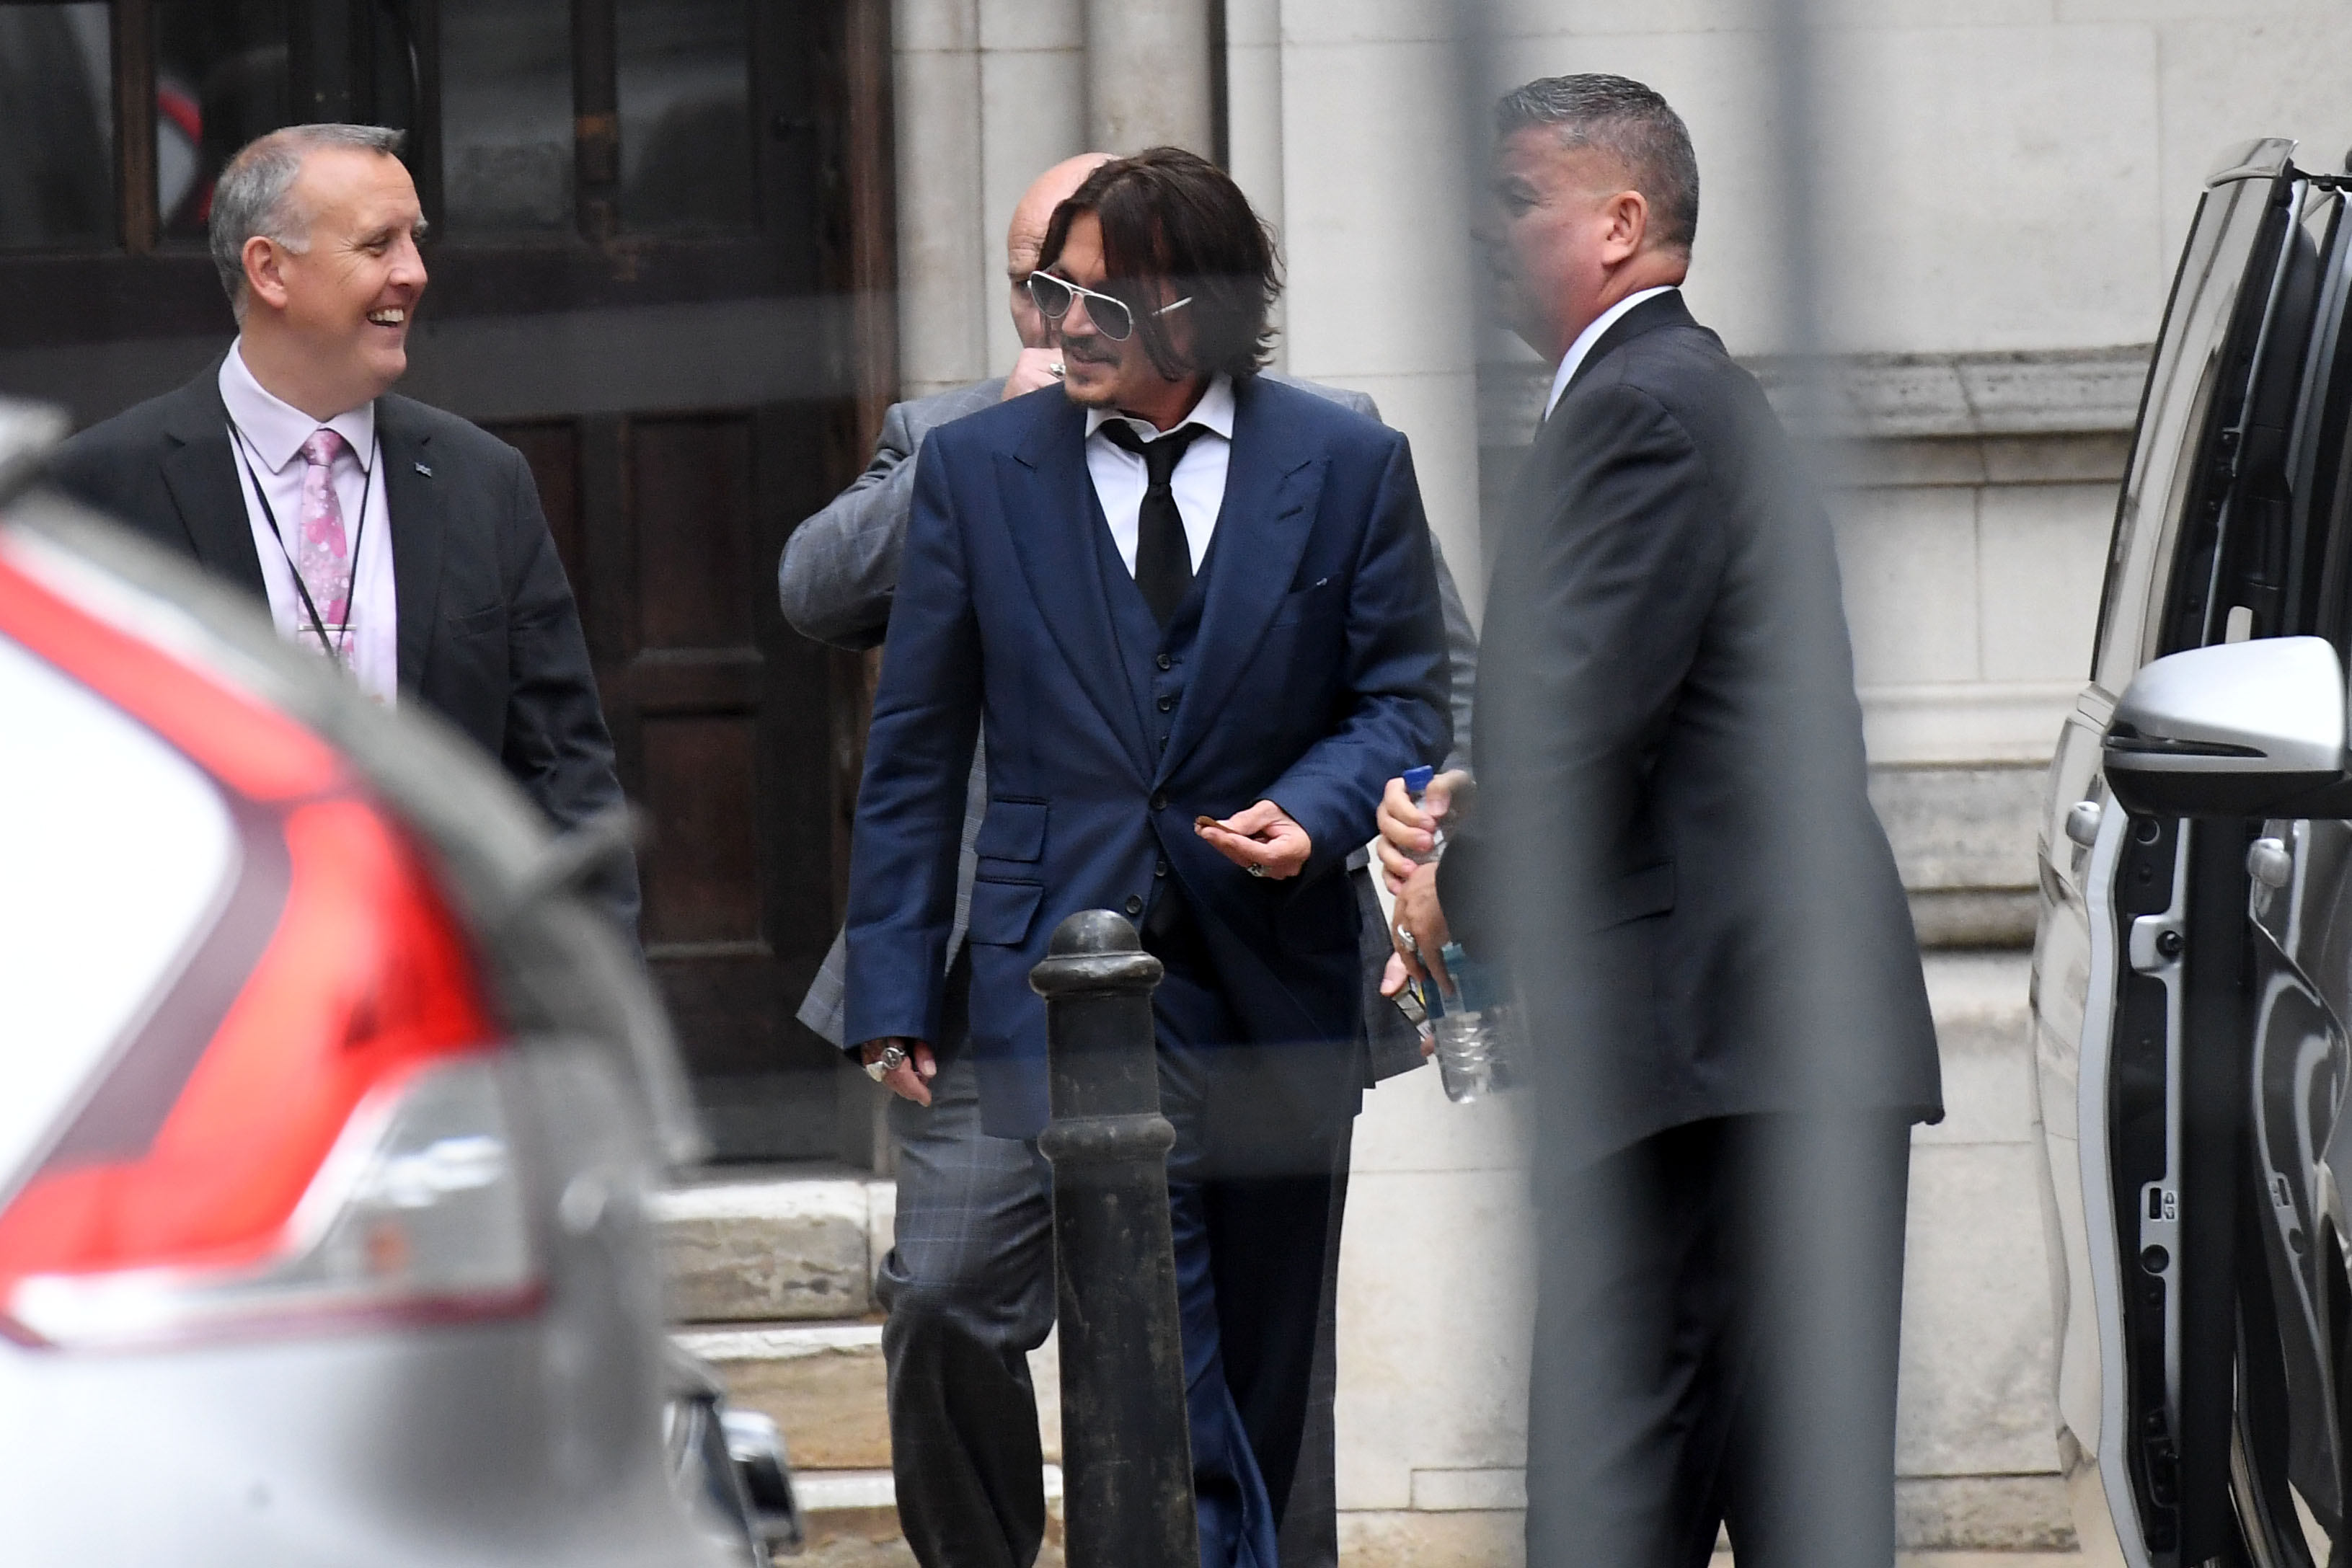 Johnny Depp leaves The Royal Courts of Justice, on the Strand on July 7, 2020 in London, England. Hollywood actor Johnny Depp is taking News Group Newspapers, publishers of The Sun, to court over allegations that he was violent towards his ex-wife, Amber Heard, 34. (Photo by Peter Summers/Getty Images)